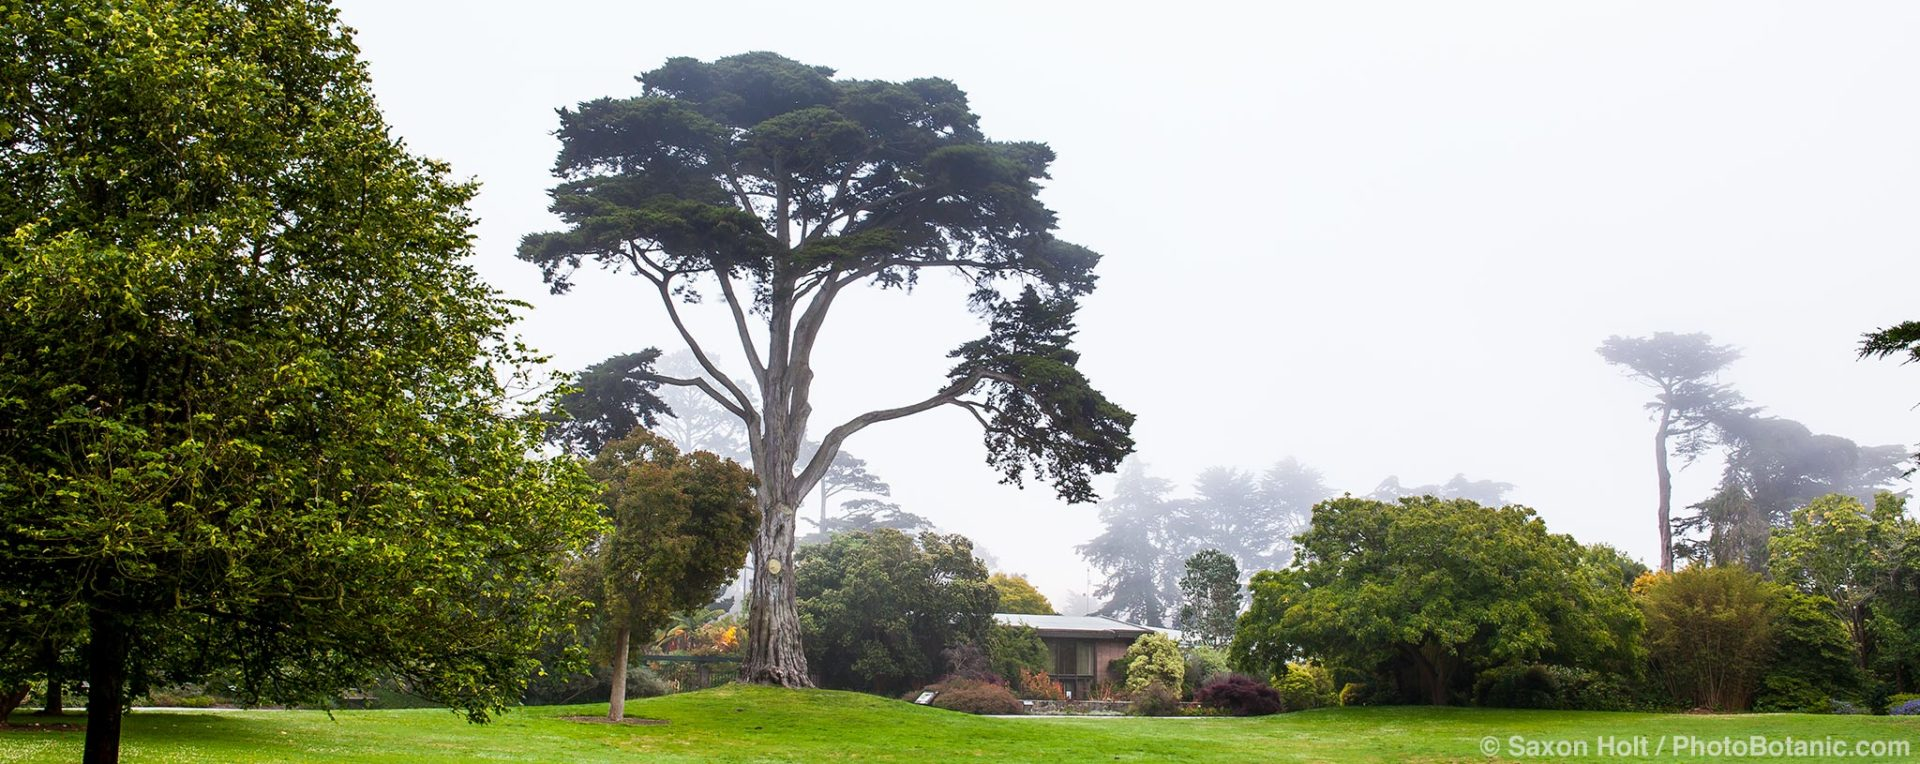 Cypress tree dominating the Great Meadow lawn at San Francisco Botanical Garden on foggy day